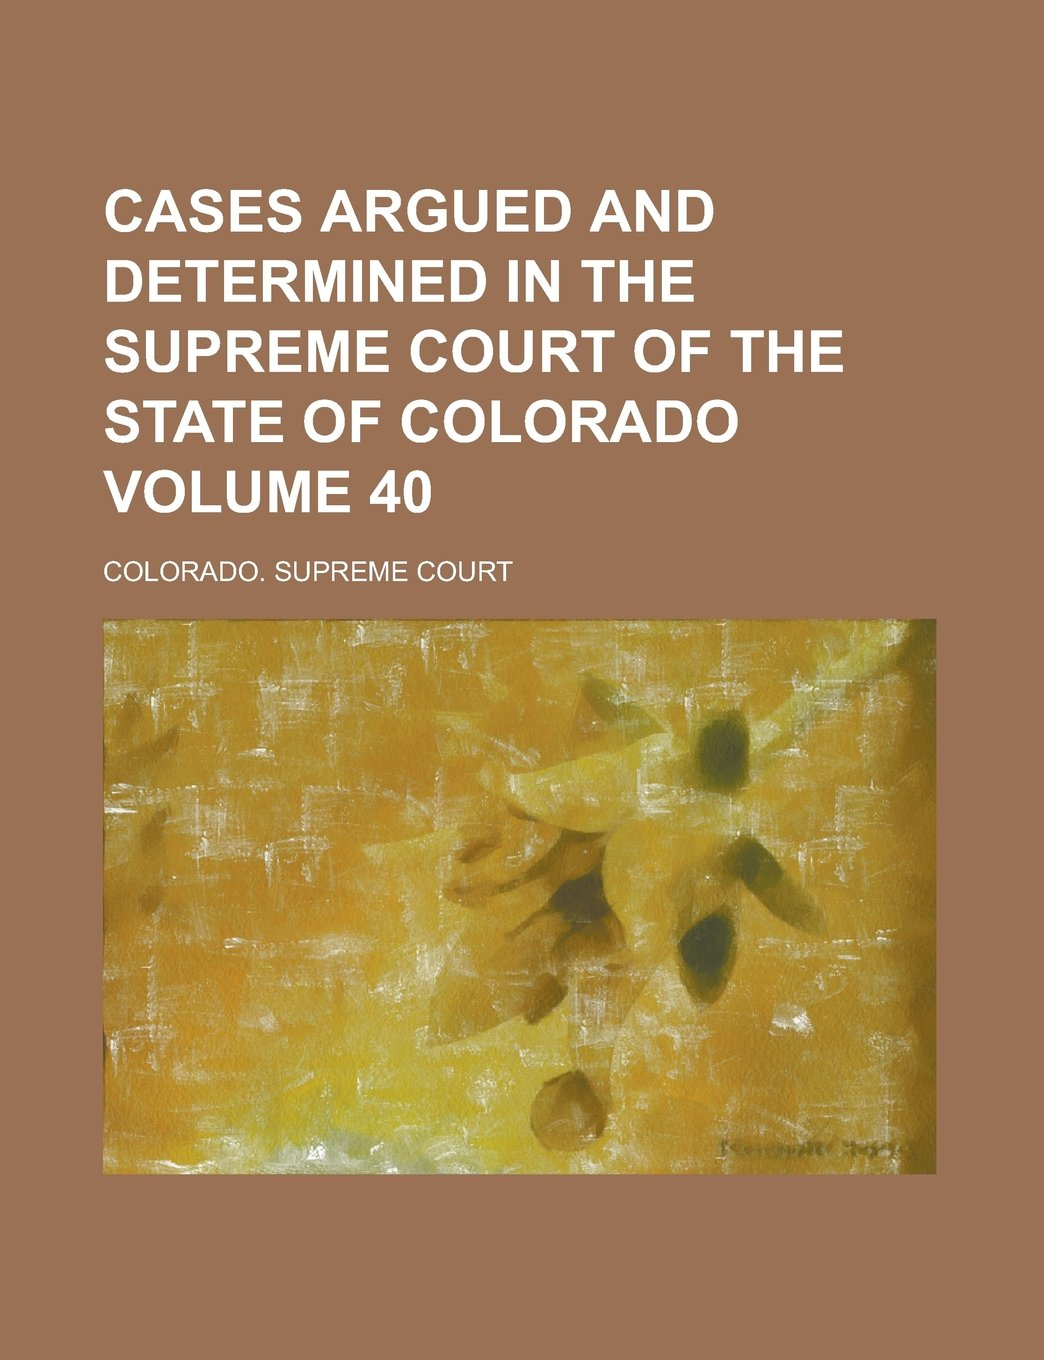 Download Cases Argued and Determined in the Supreme Court of the State of Colorado Volume 40 PDF